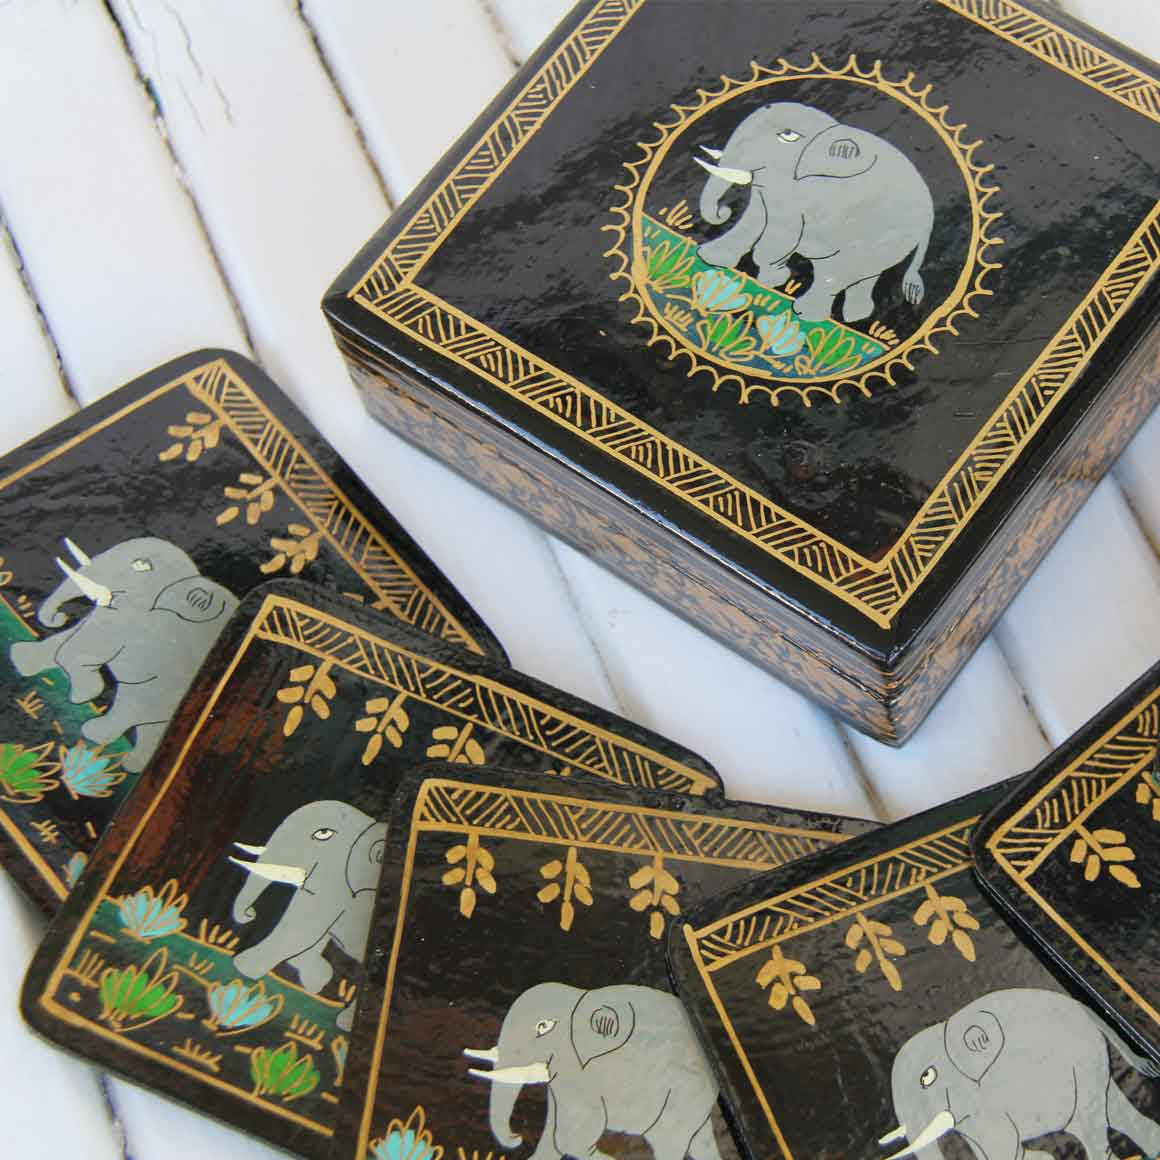 Fair Trade Ethical Square Wooden Coaster Set Black Elephant